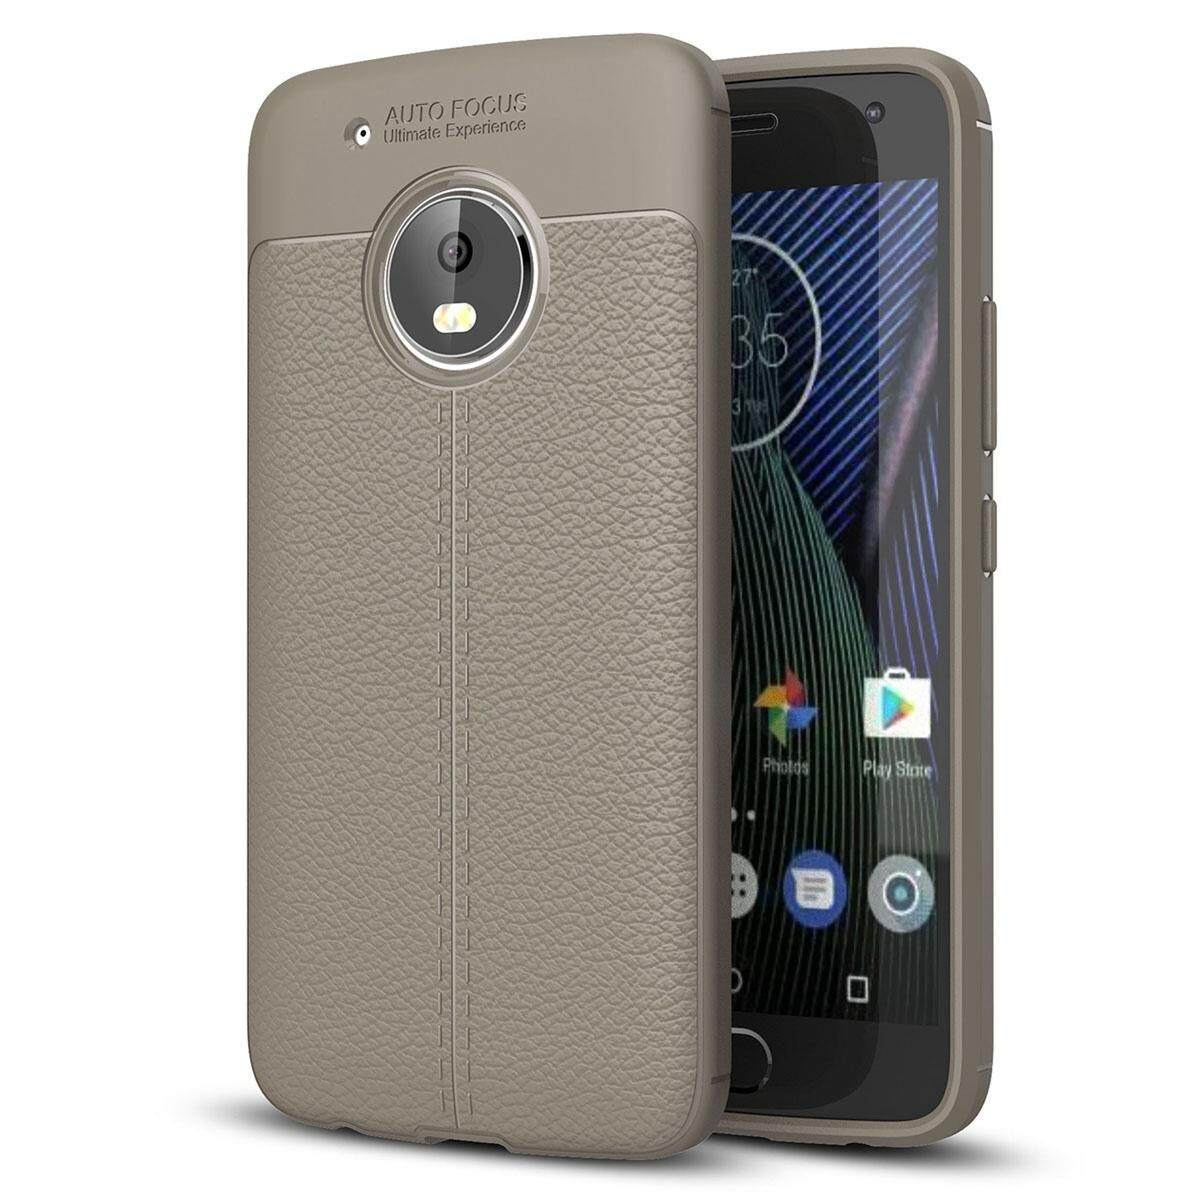 Buy Sell Cheapest Motorola G5 Plus Best Quality Product Deals Moto G5s Tempered Glass Full Cover Black Dan Gold Case Lenuo Carbon Fashion Ultra Thin Leather Back Premium